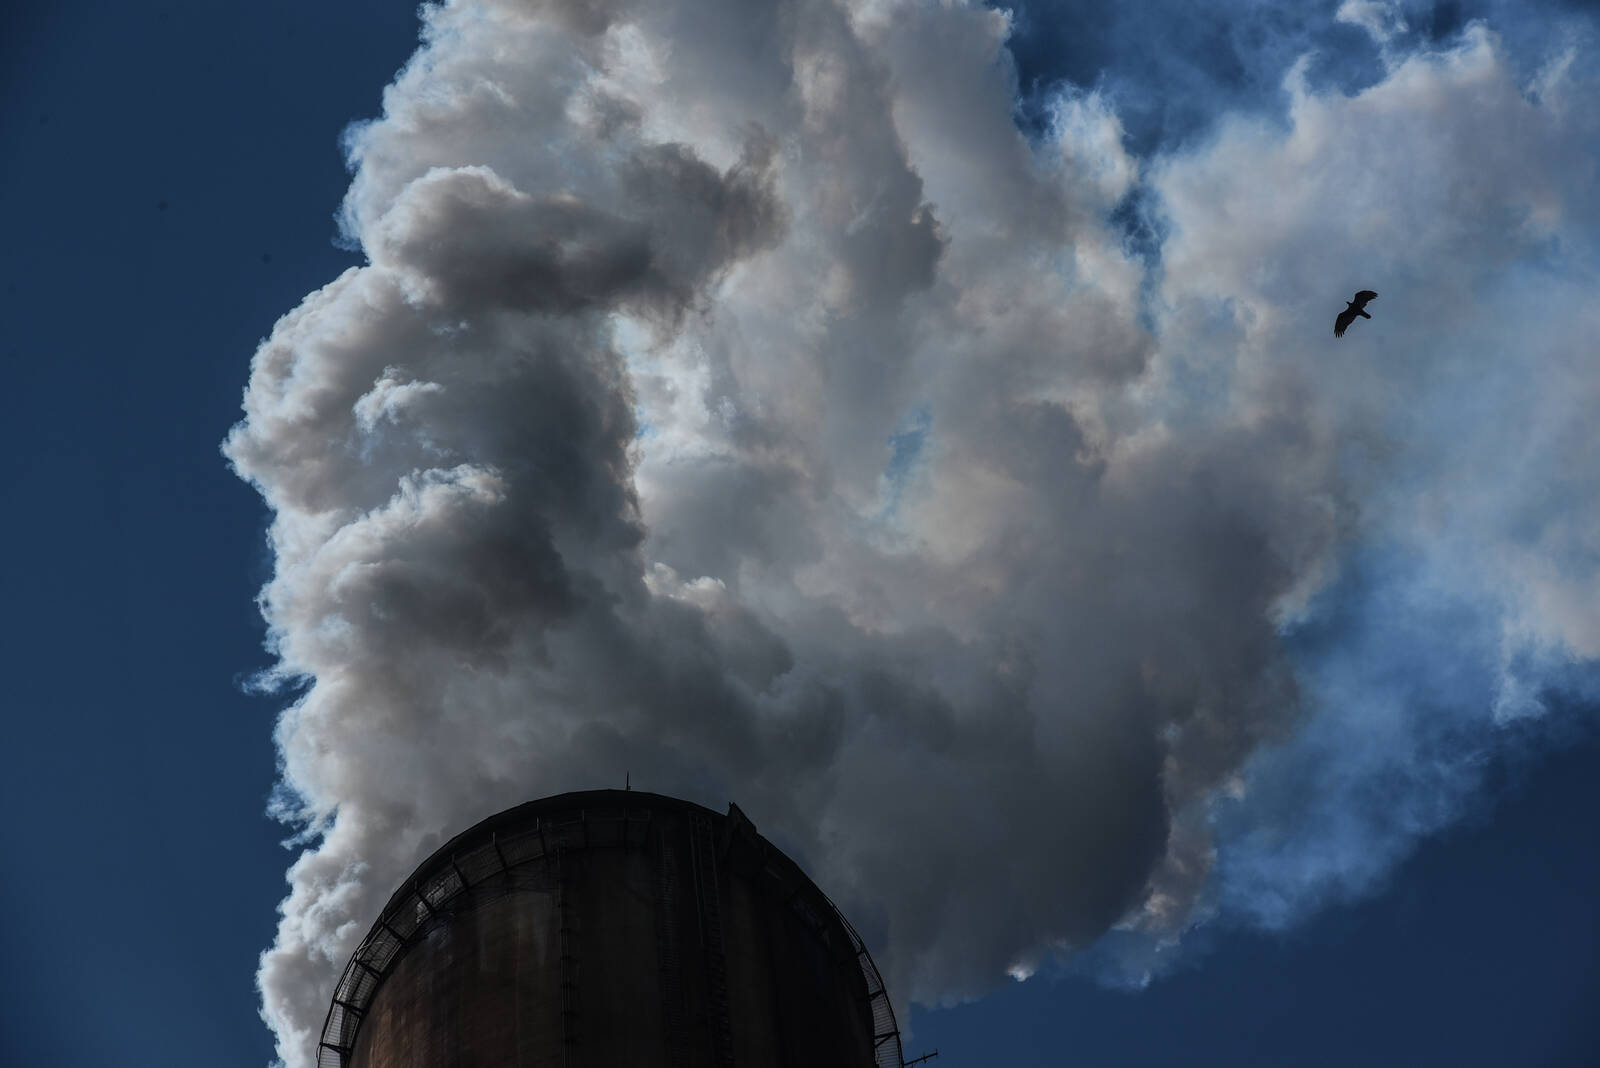 One of the smokestacks at the Gavin power plant in Cheshire, Ohio, which is now owned by Lightstone Generation LLC, an independent power producer. It continues to operate while many others have closed or are scheduled to close as utilities announce plans